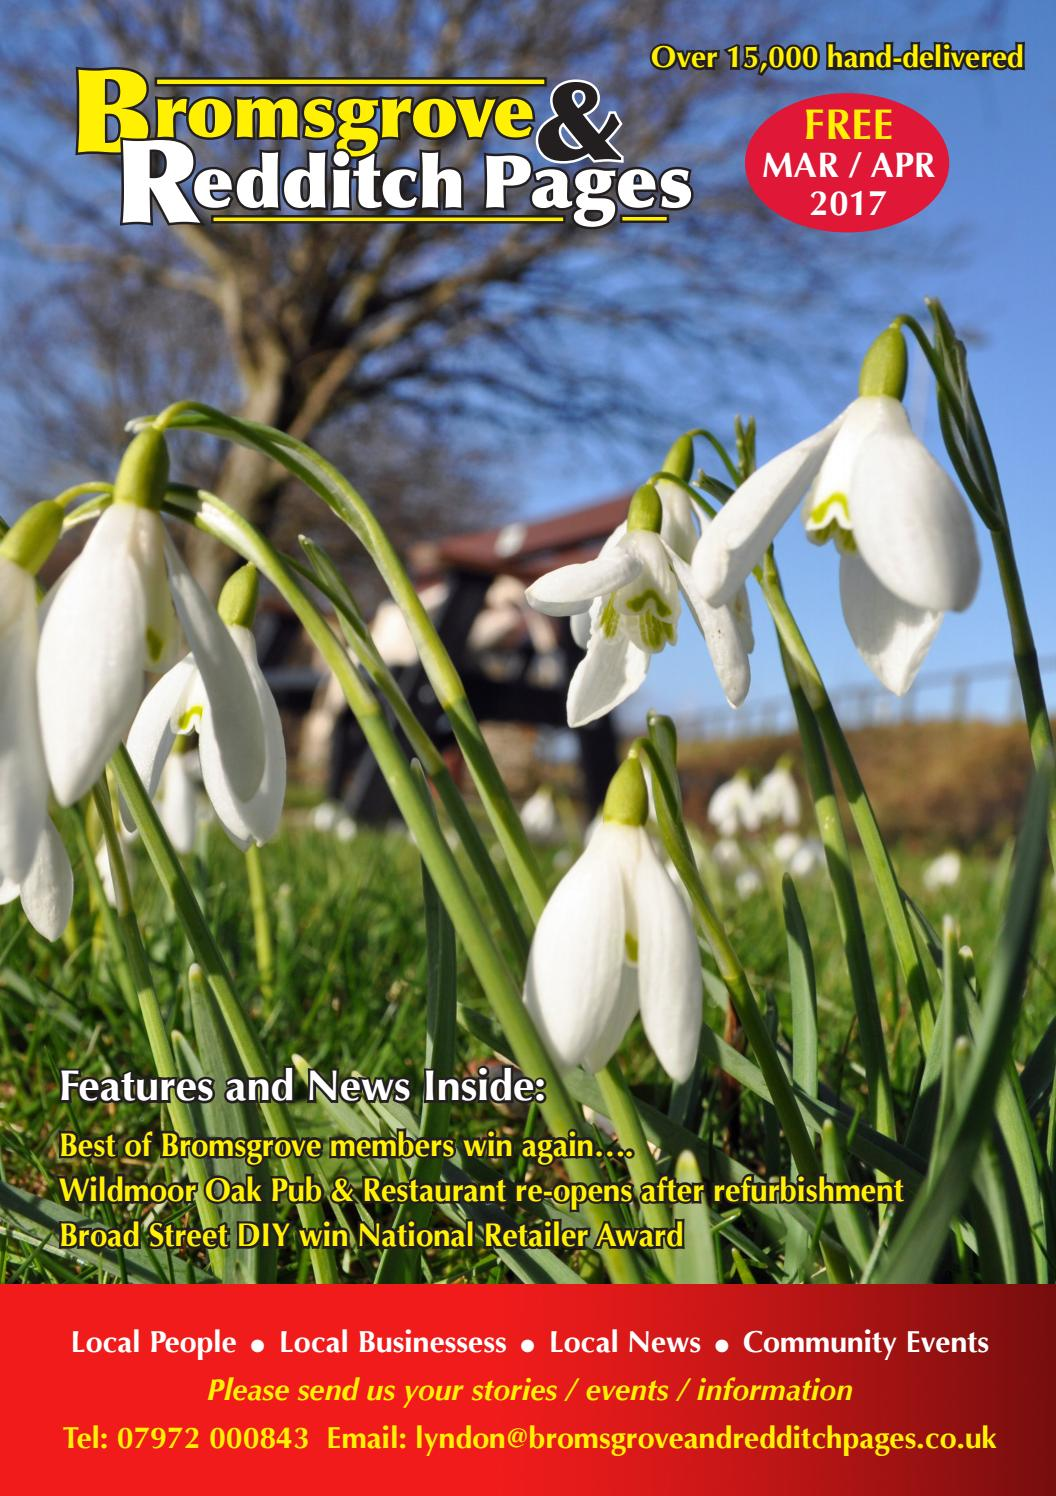 Bromsgrove redditch pages march april 2017 by the bromsgrove bromsgrove redditch pages march april 2017 by the bromsgrove oracle issuu izmirmasajfo